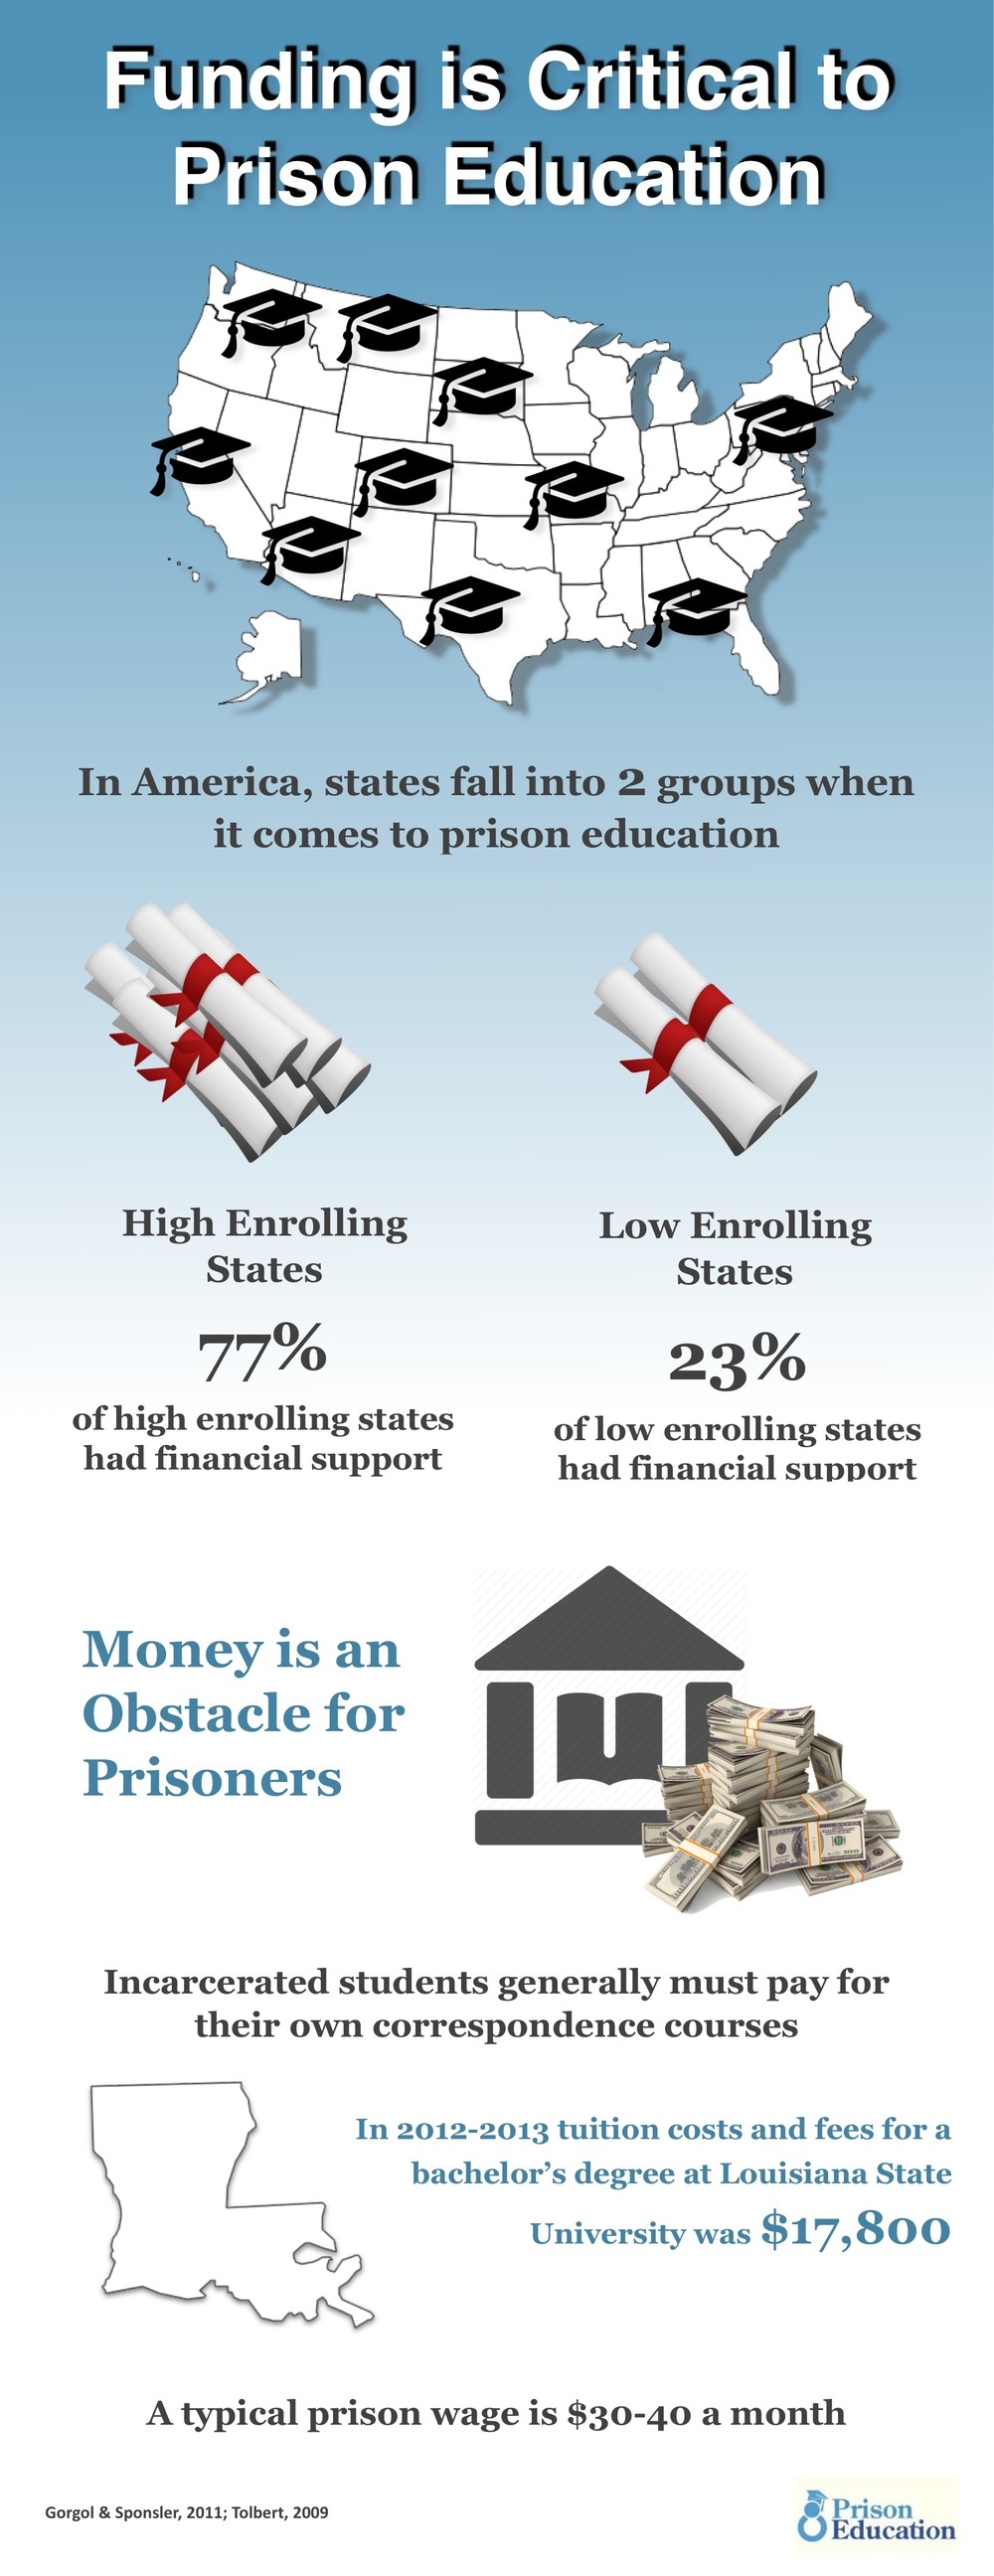 Educational funding for prison inmates is inadequate and varies throughout the United States, despite the many benefits of correctional education.